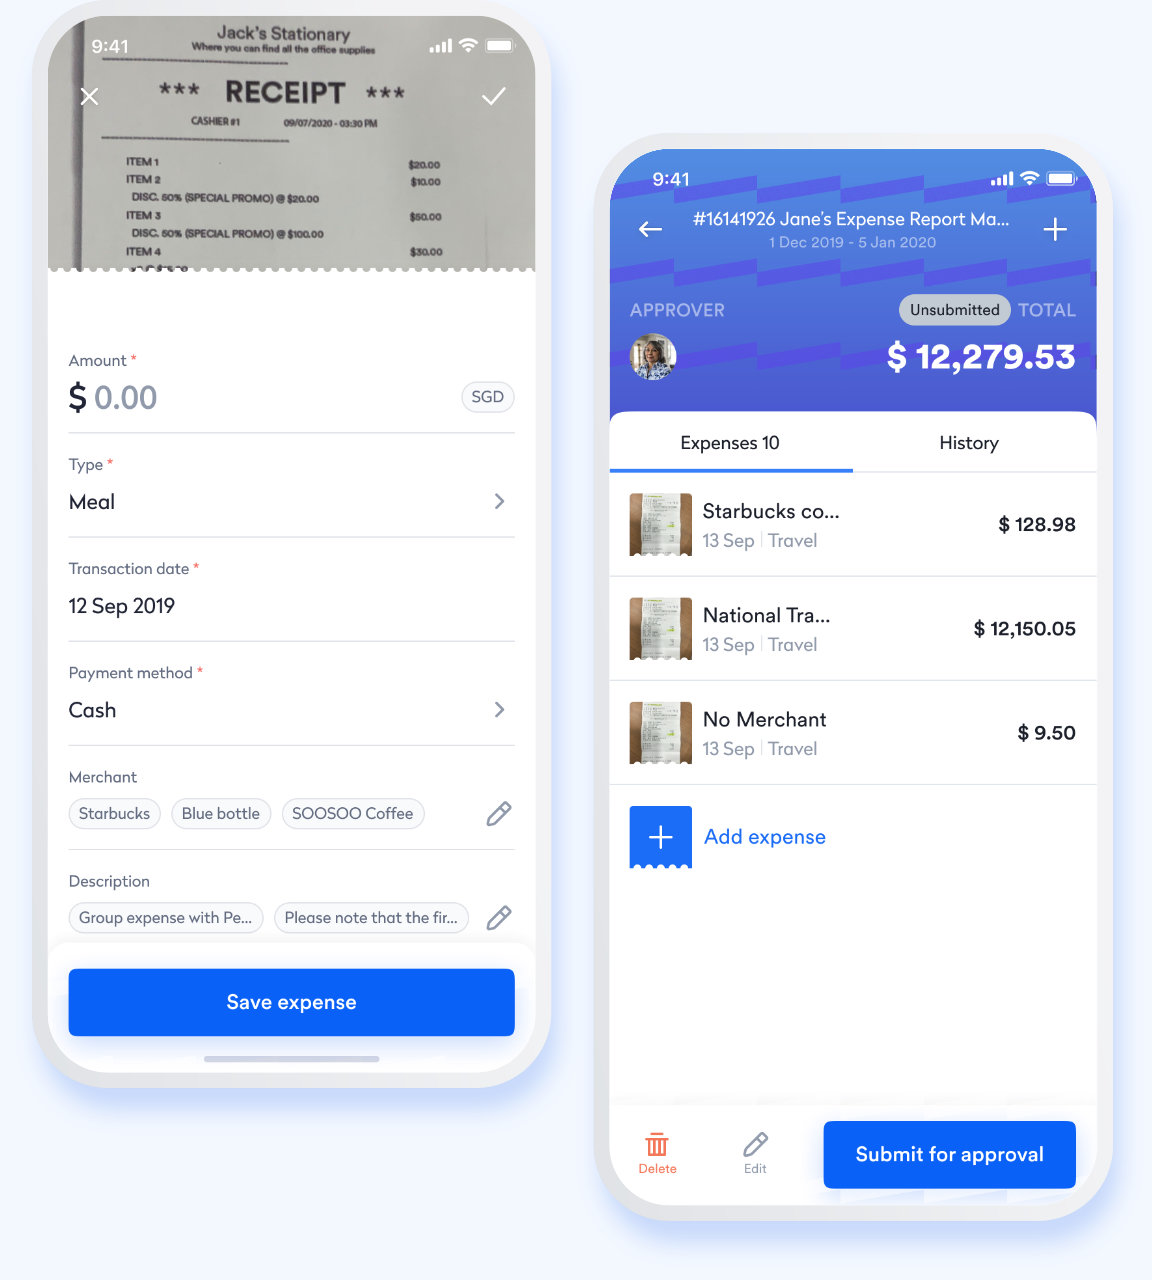 Swingvy mobile HR app view of employee expense claim submission process